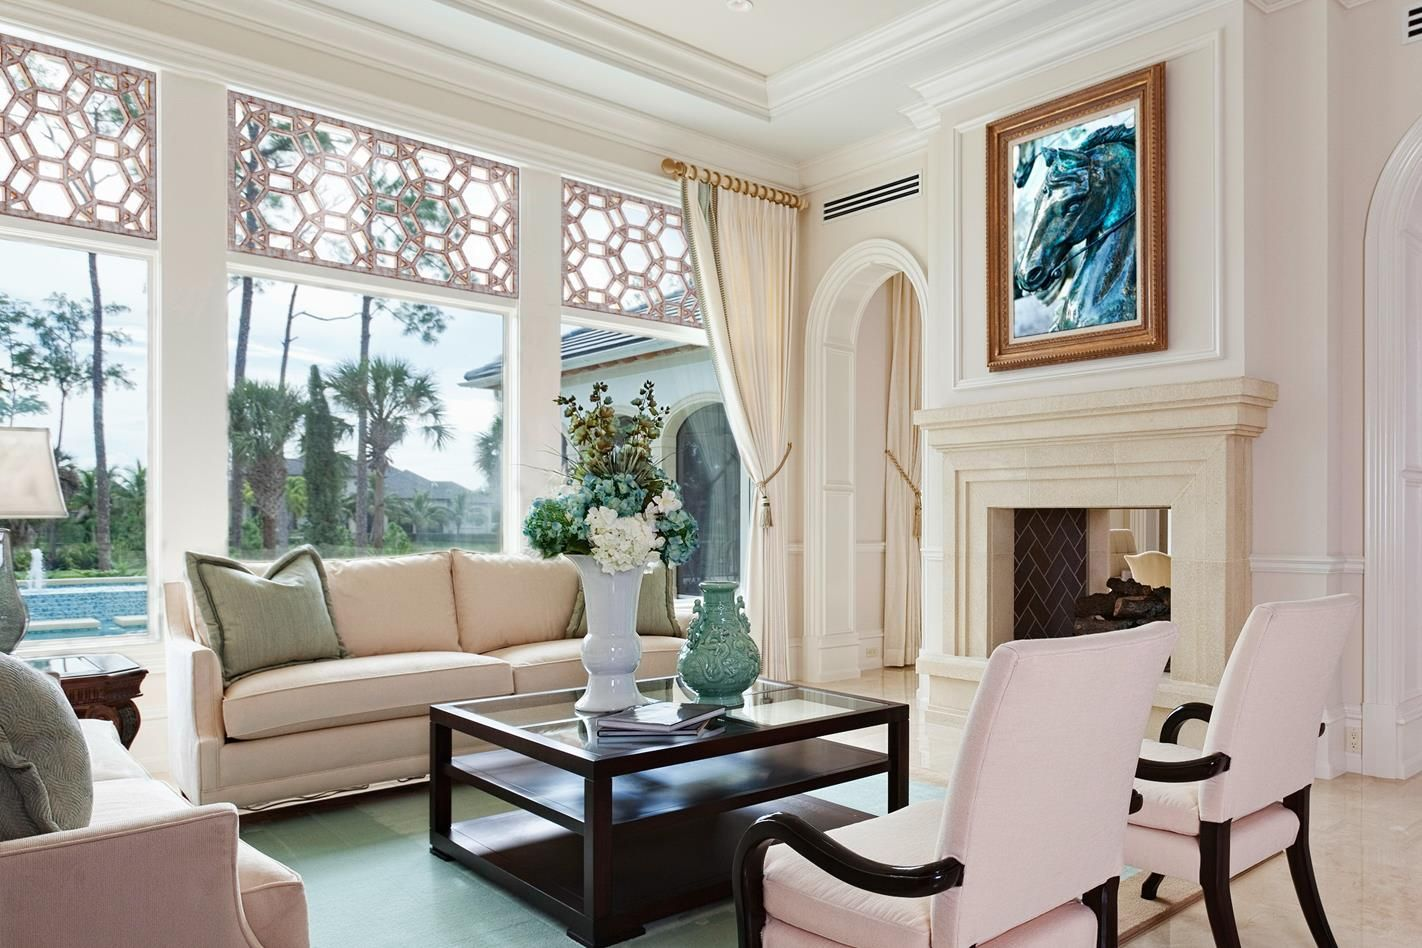 decrotative grilles above windows in living room a shade above window fashions